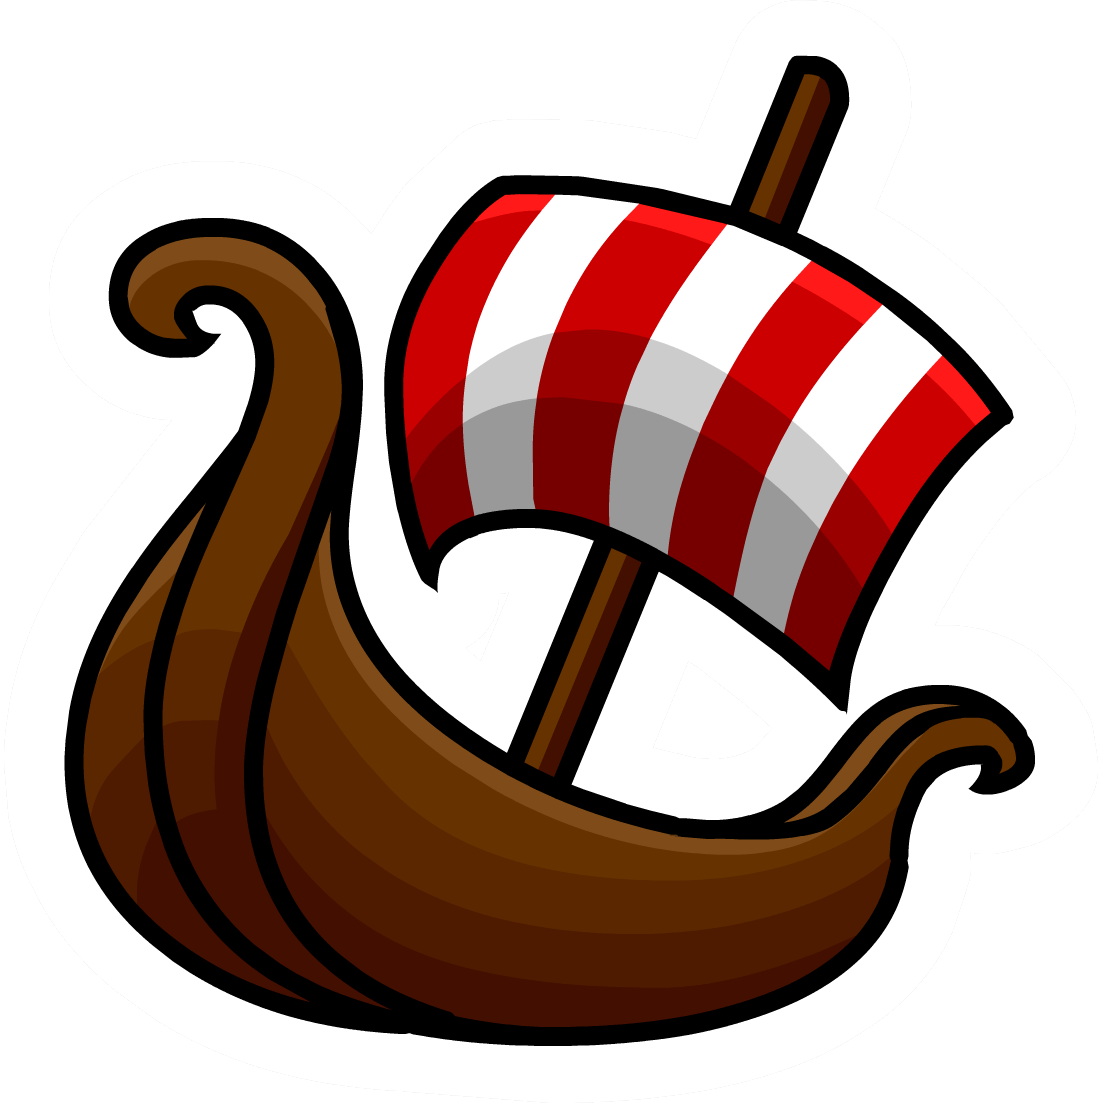 Viking sticker transparent png. Clipart boat person